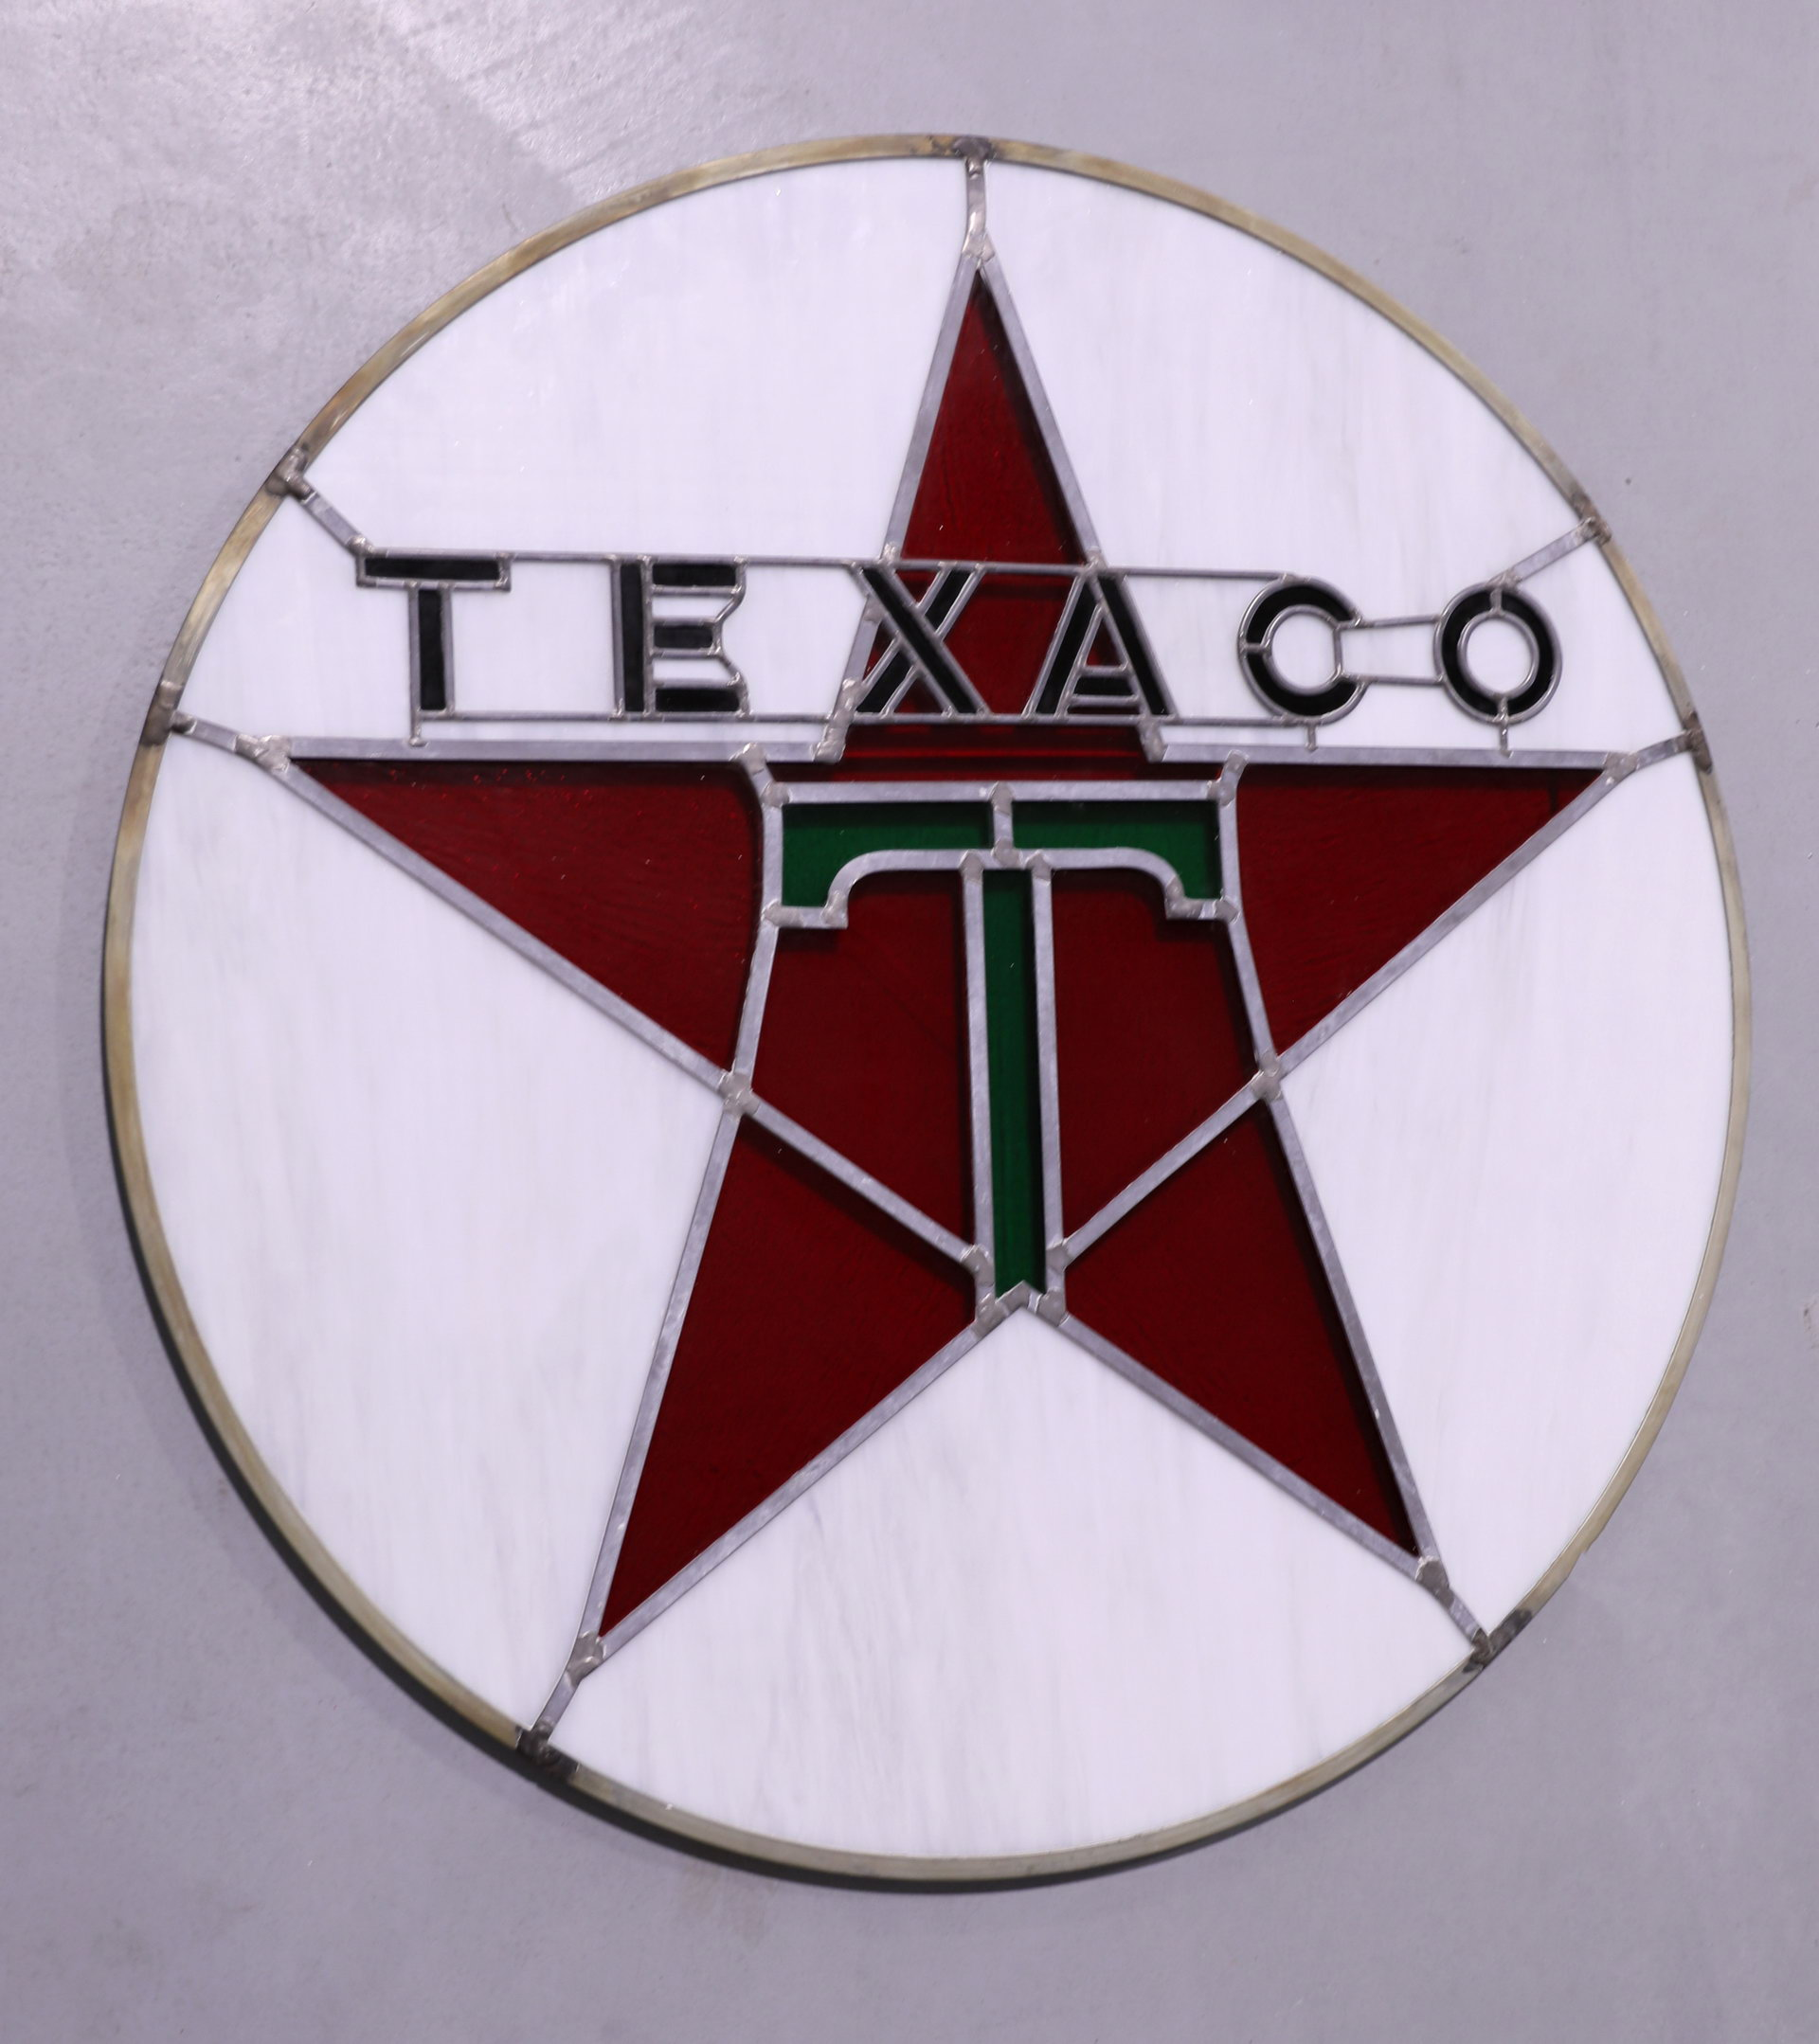 Reproduction Texaco Oil Stained Glass Sign